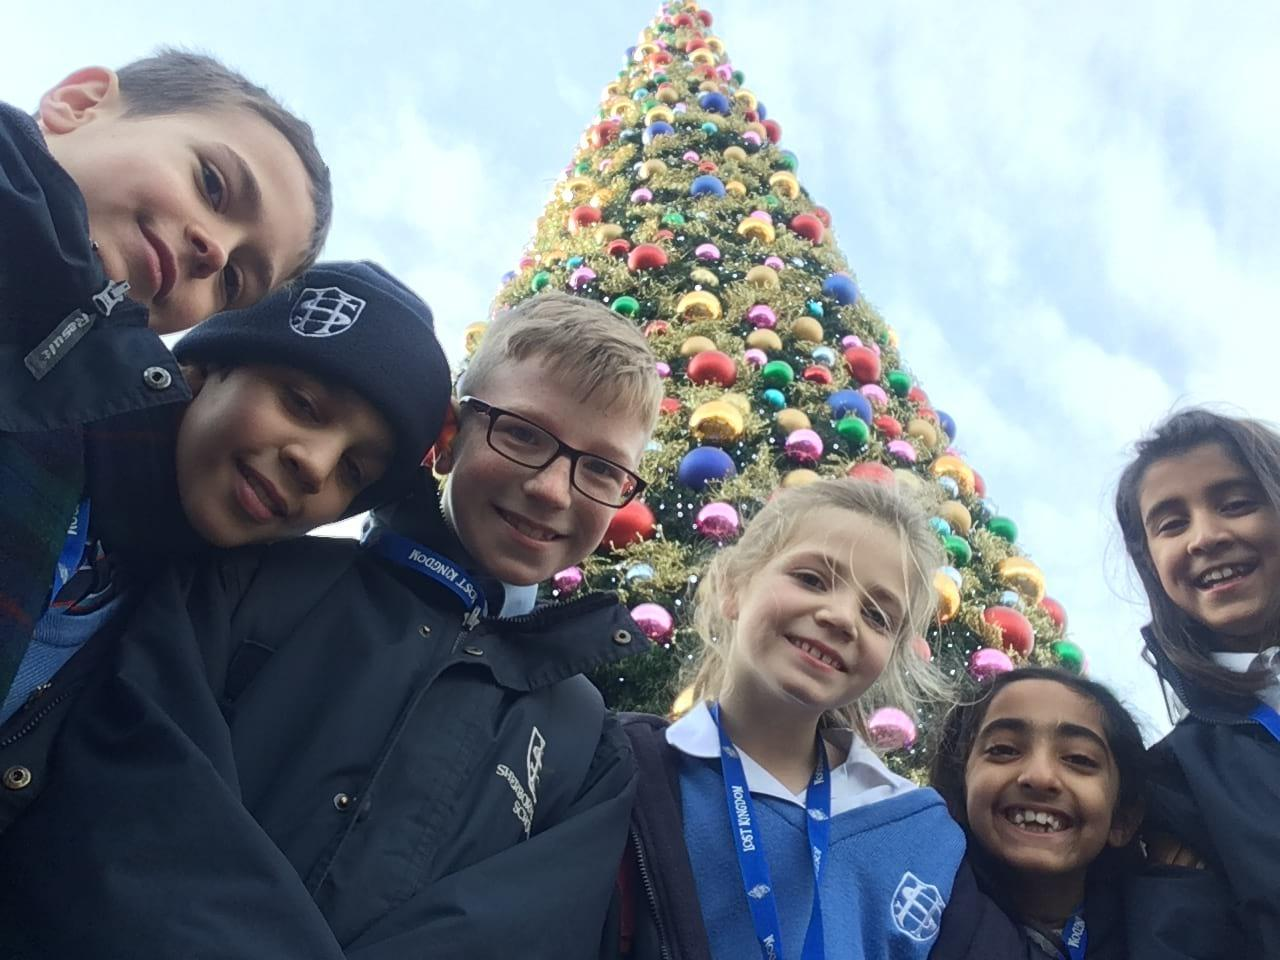 Visit Paultons Park at Christmas: By Sherborne House School Primary Reporters - Juliette, Mia, Kaavy